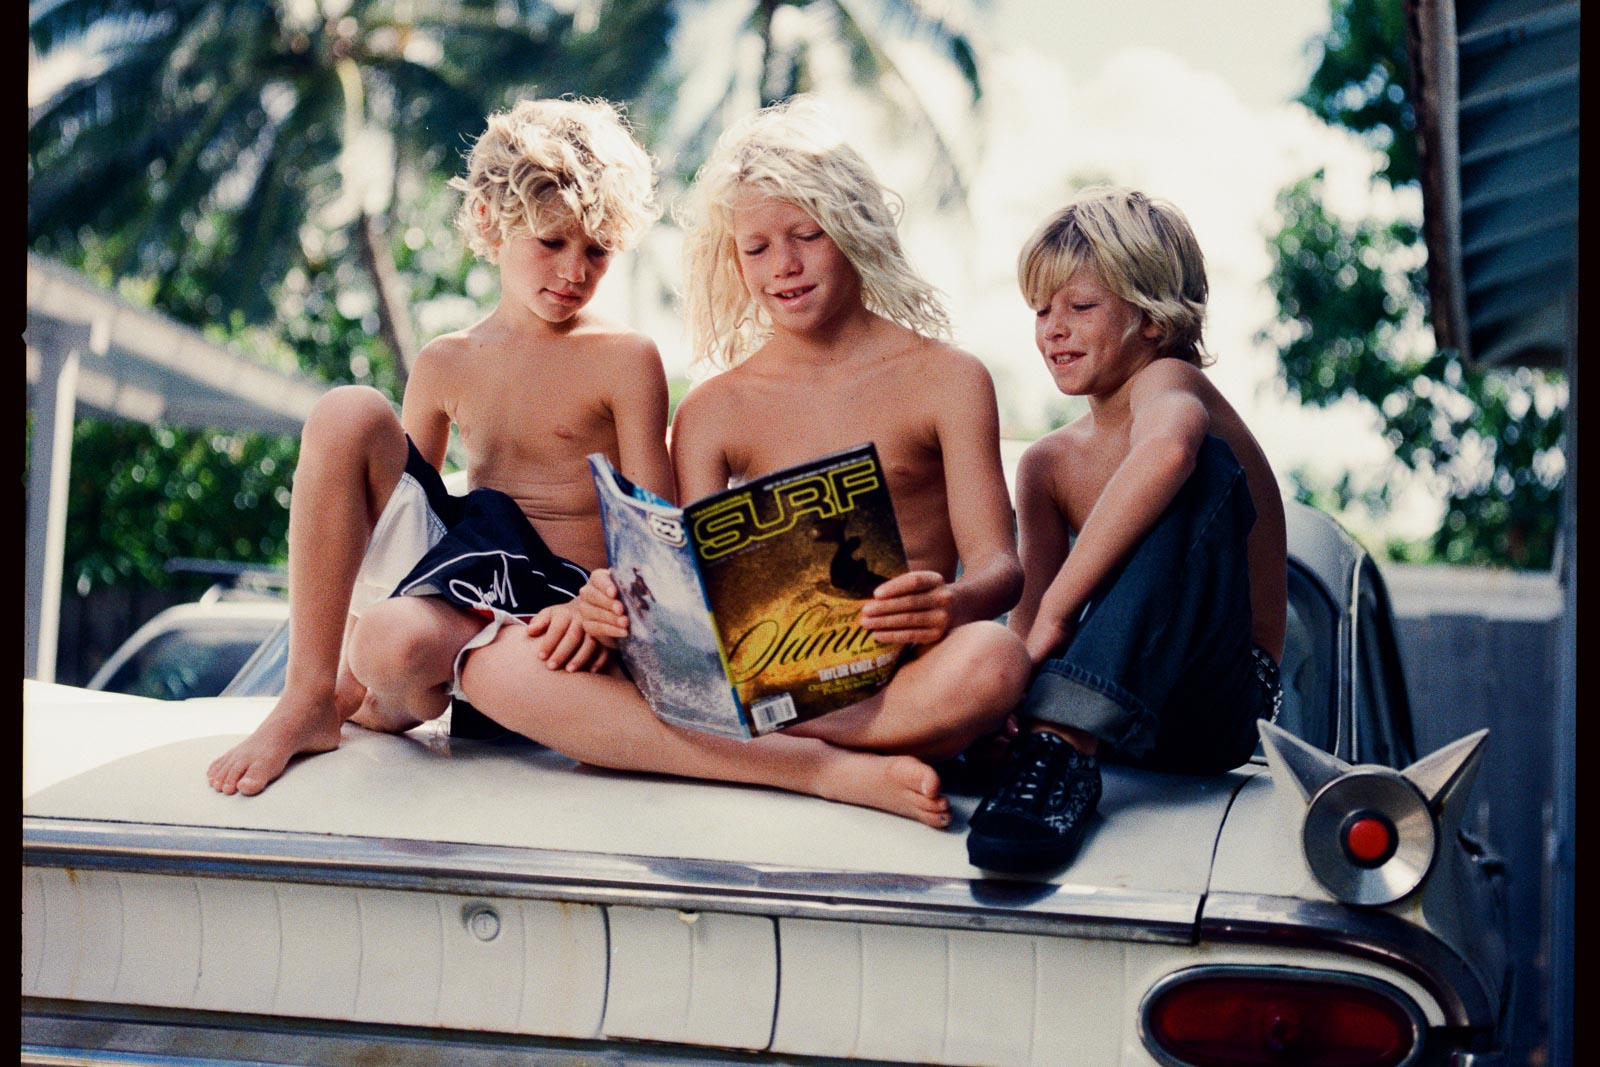 surfer kids cadillac car classic hawaii palm trees portrait photography